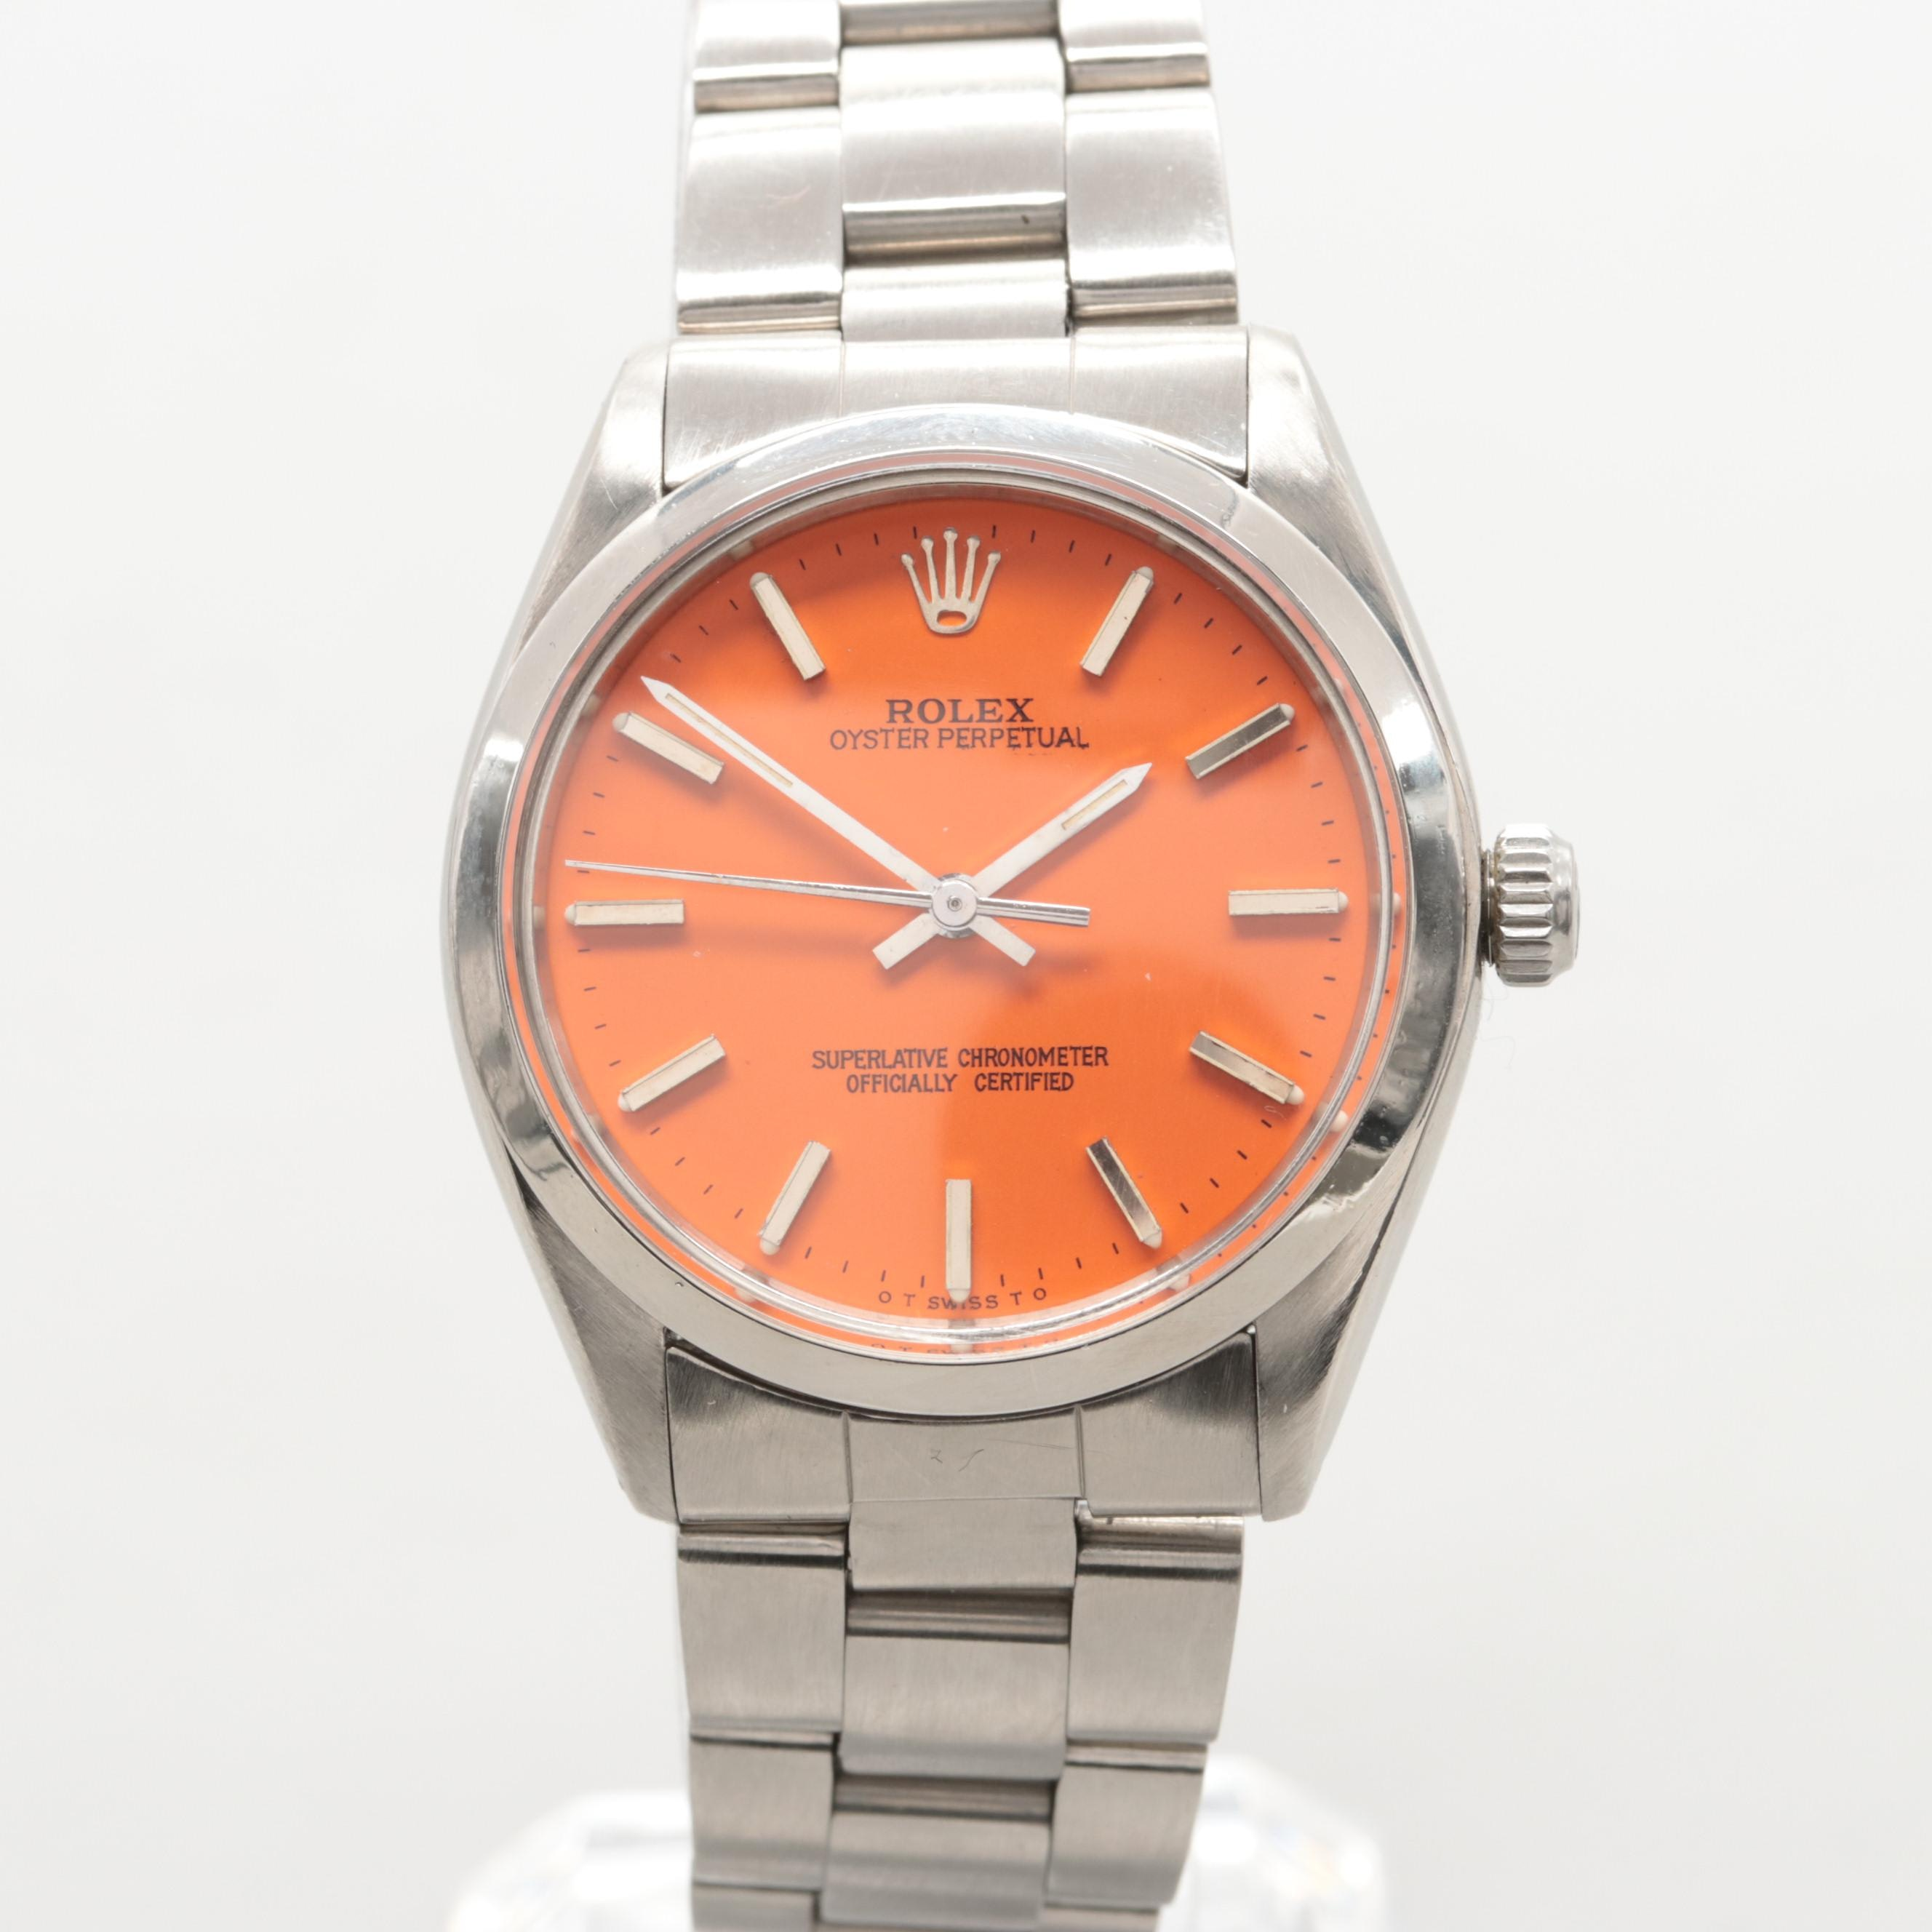 Rolex Oyster Perpetual 5500 Automatic Wristwatch Circa 1982